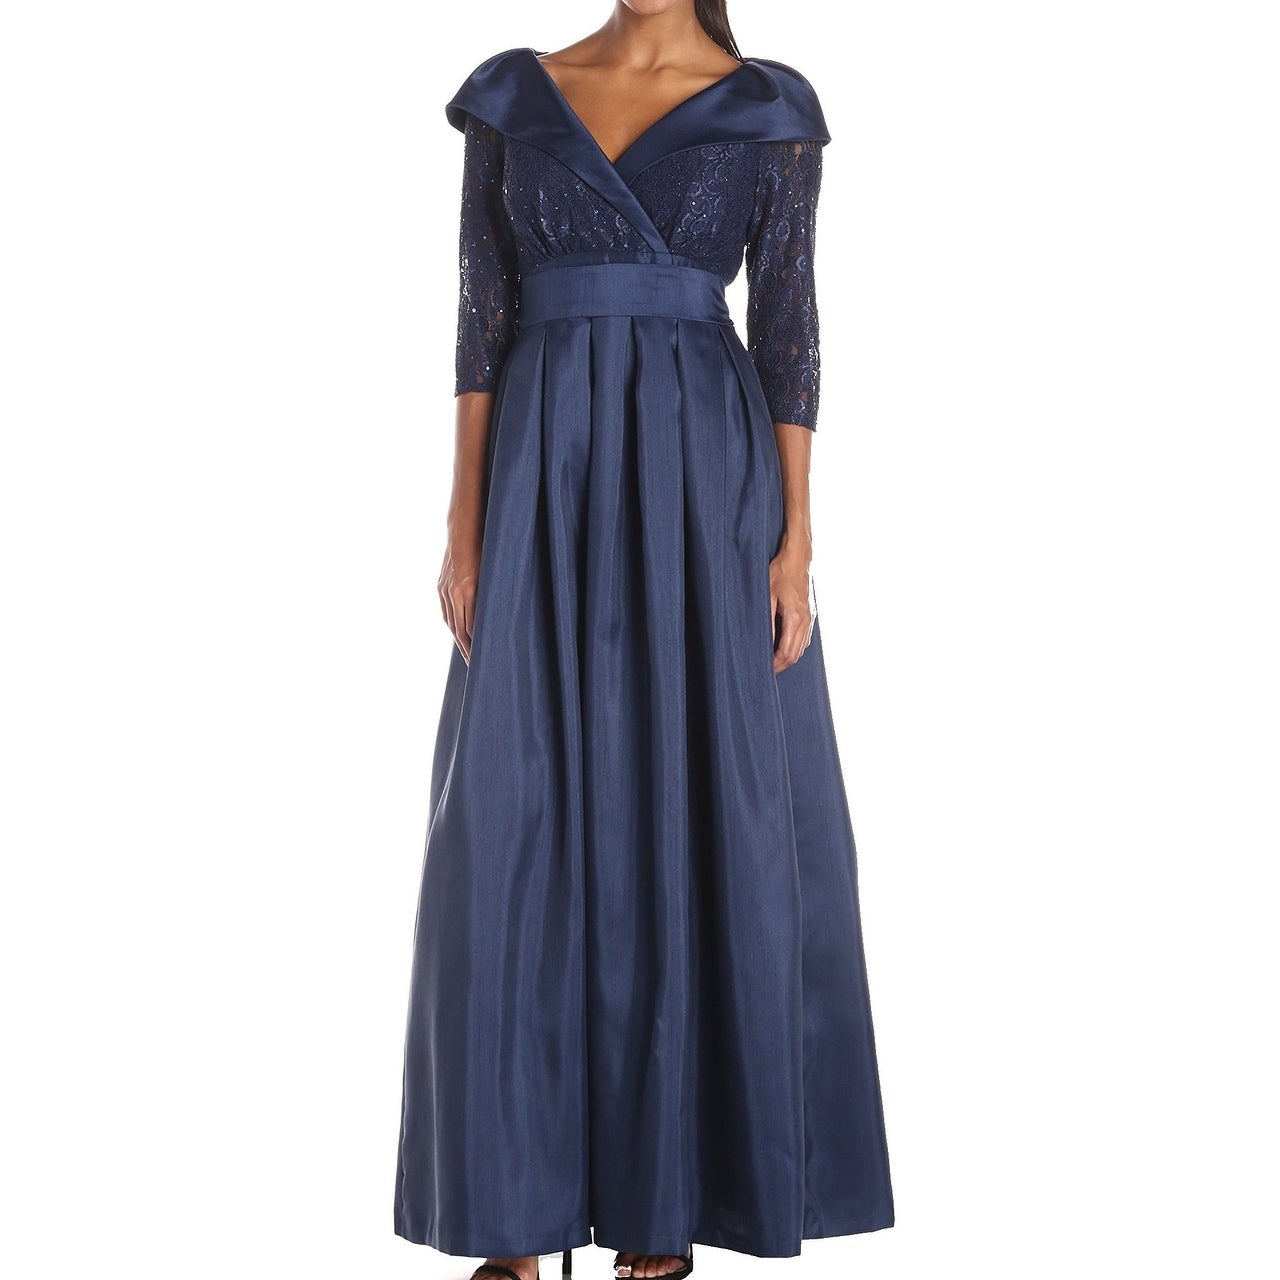 fa546fdfd1 Shop Jessica Howard NEW Navy Blue Women's 12 Pleated Lace Ball Gown - Free  Shipping On Orders Over $45 - Overstock - 18948024